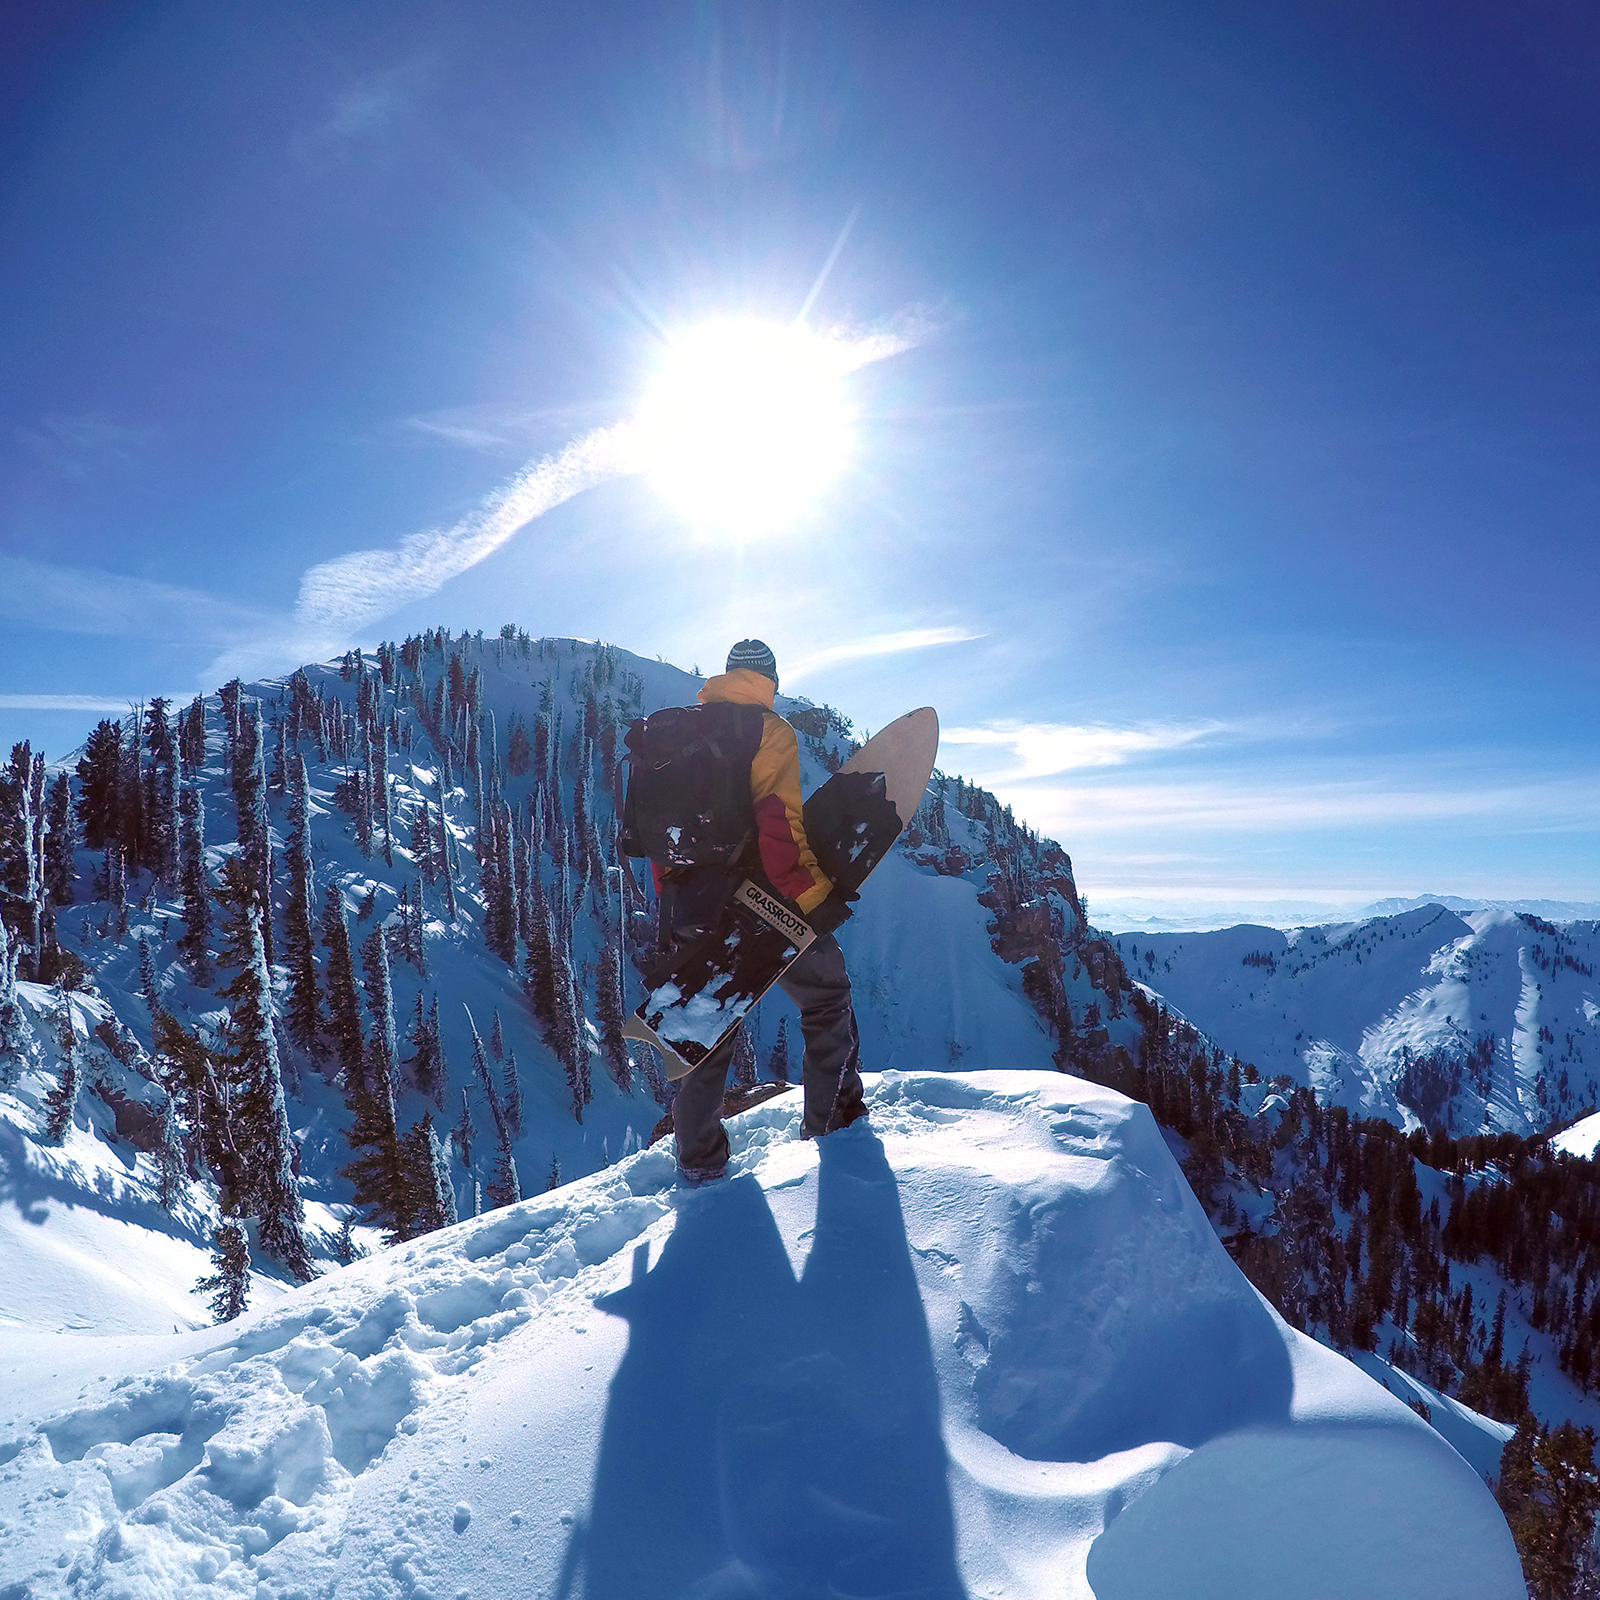 Jeremy Jensen surfs mountains. Wasatch backcountry, 2015